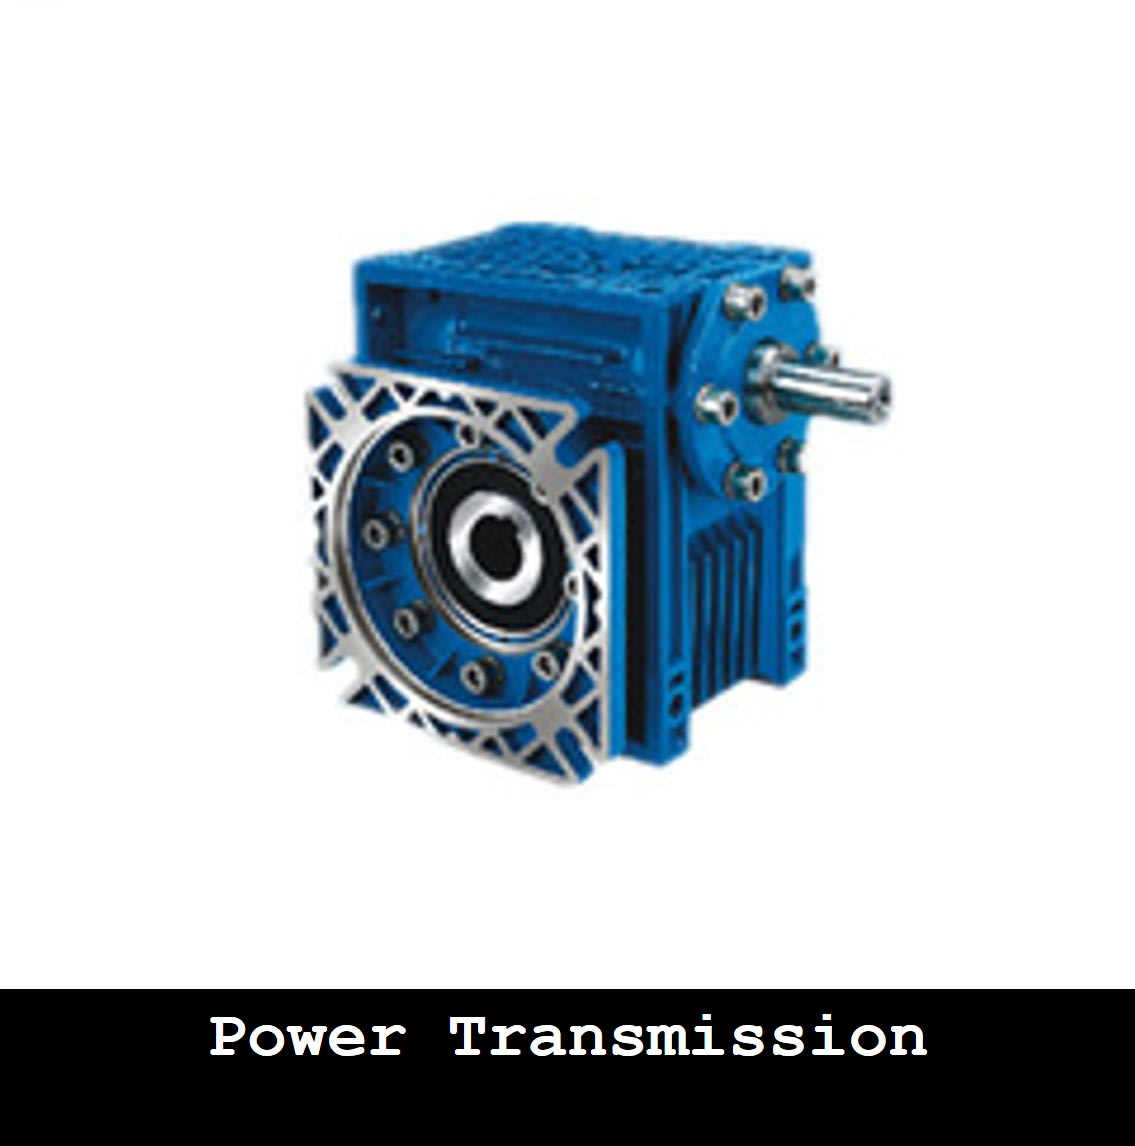 Power Transmission | Smith Industrial Supply | Port Colborne Industrial Supply